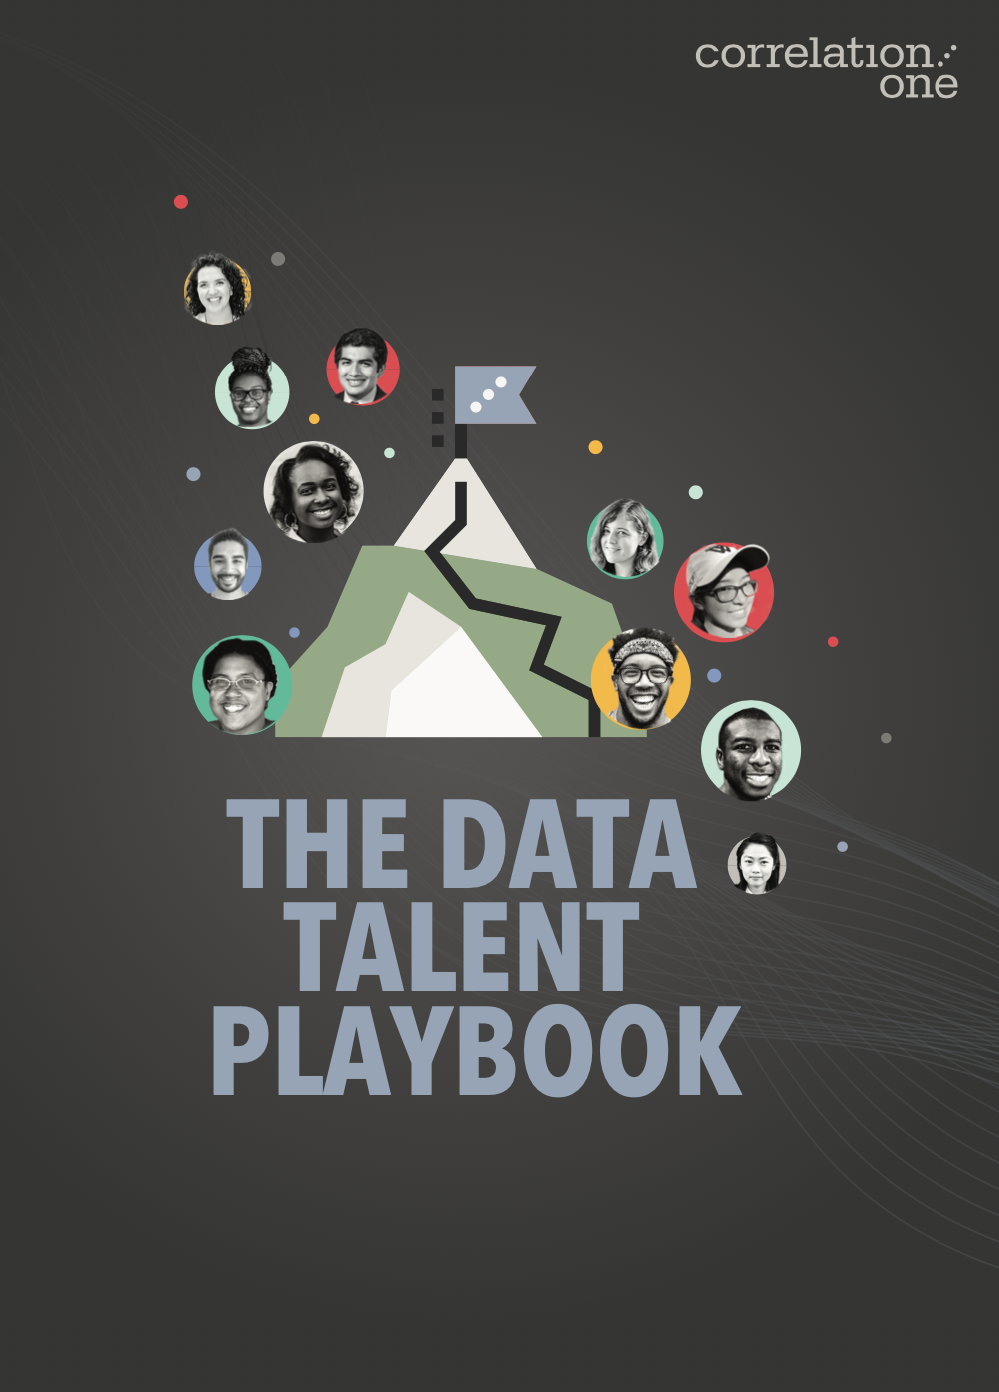 The Data Talent Playbook from Correlation One_Cover